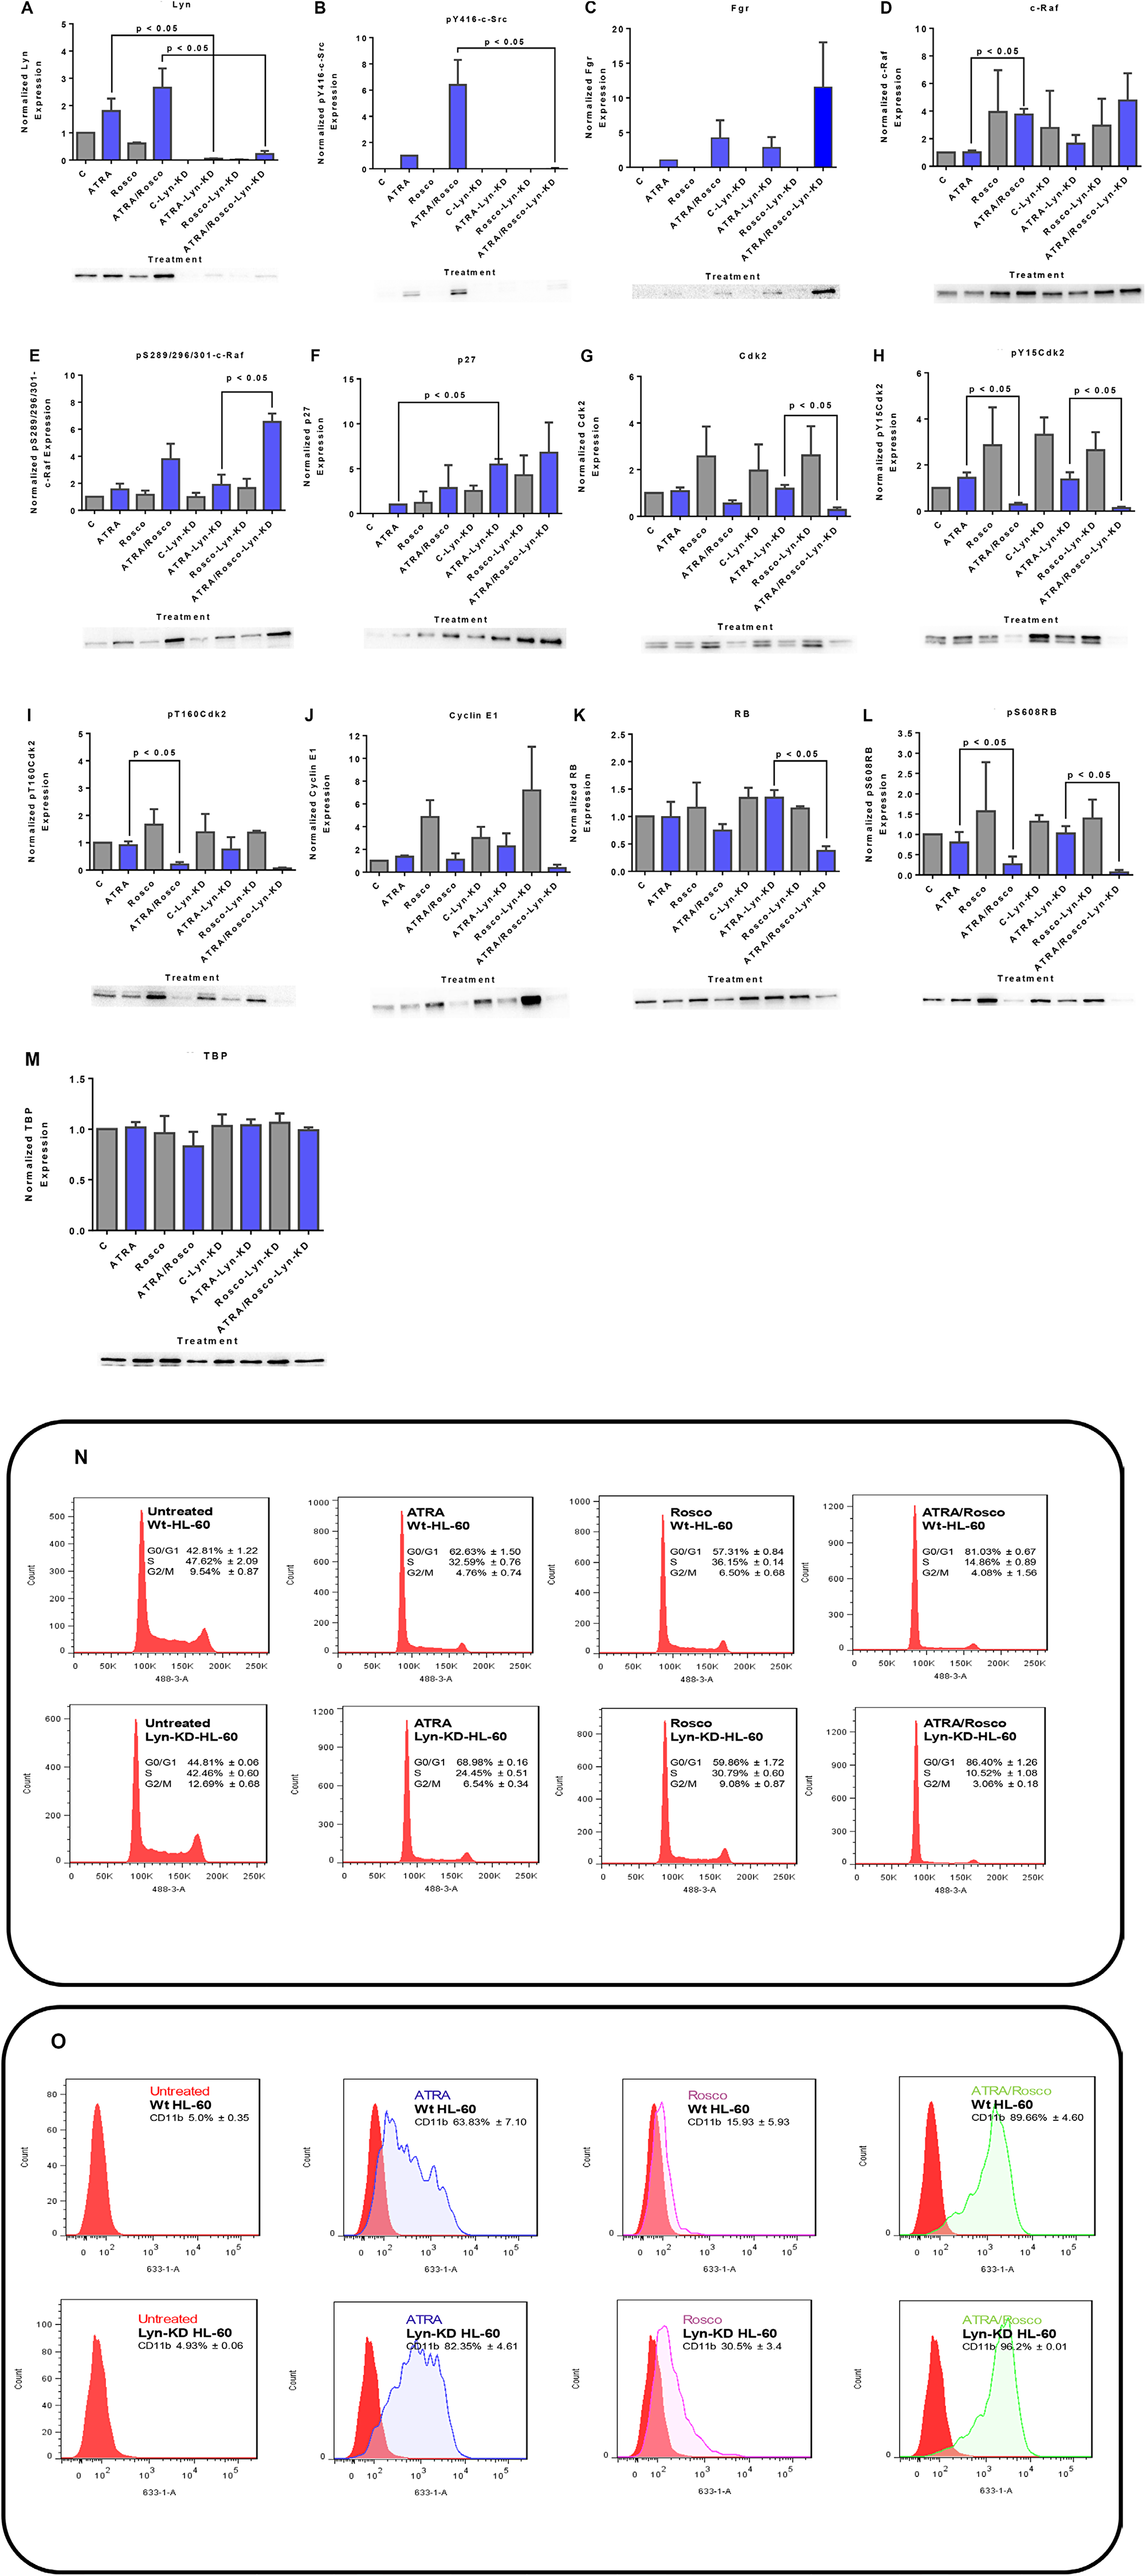 Western blots of nuclear lysate, CD11b and DNA histograms show that Lyn knockdown enhances ATRA-roscovitine induced gene expression and myeloid differentiation.